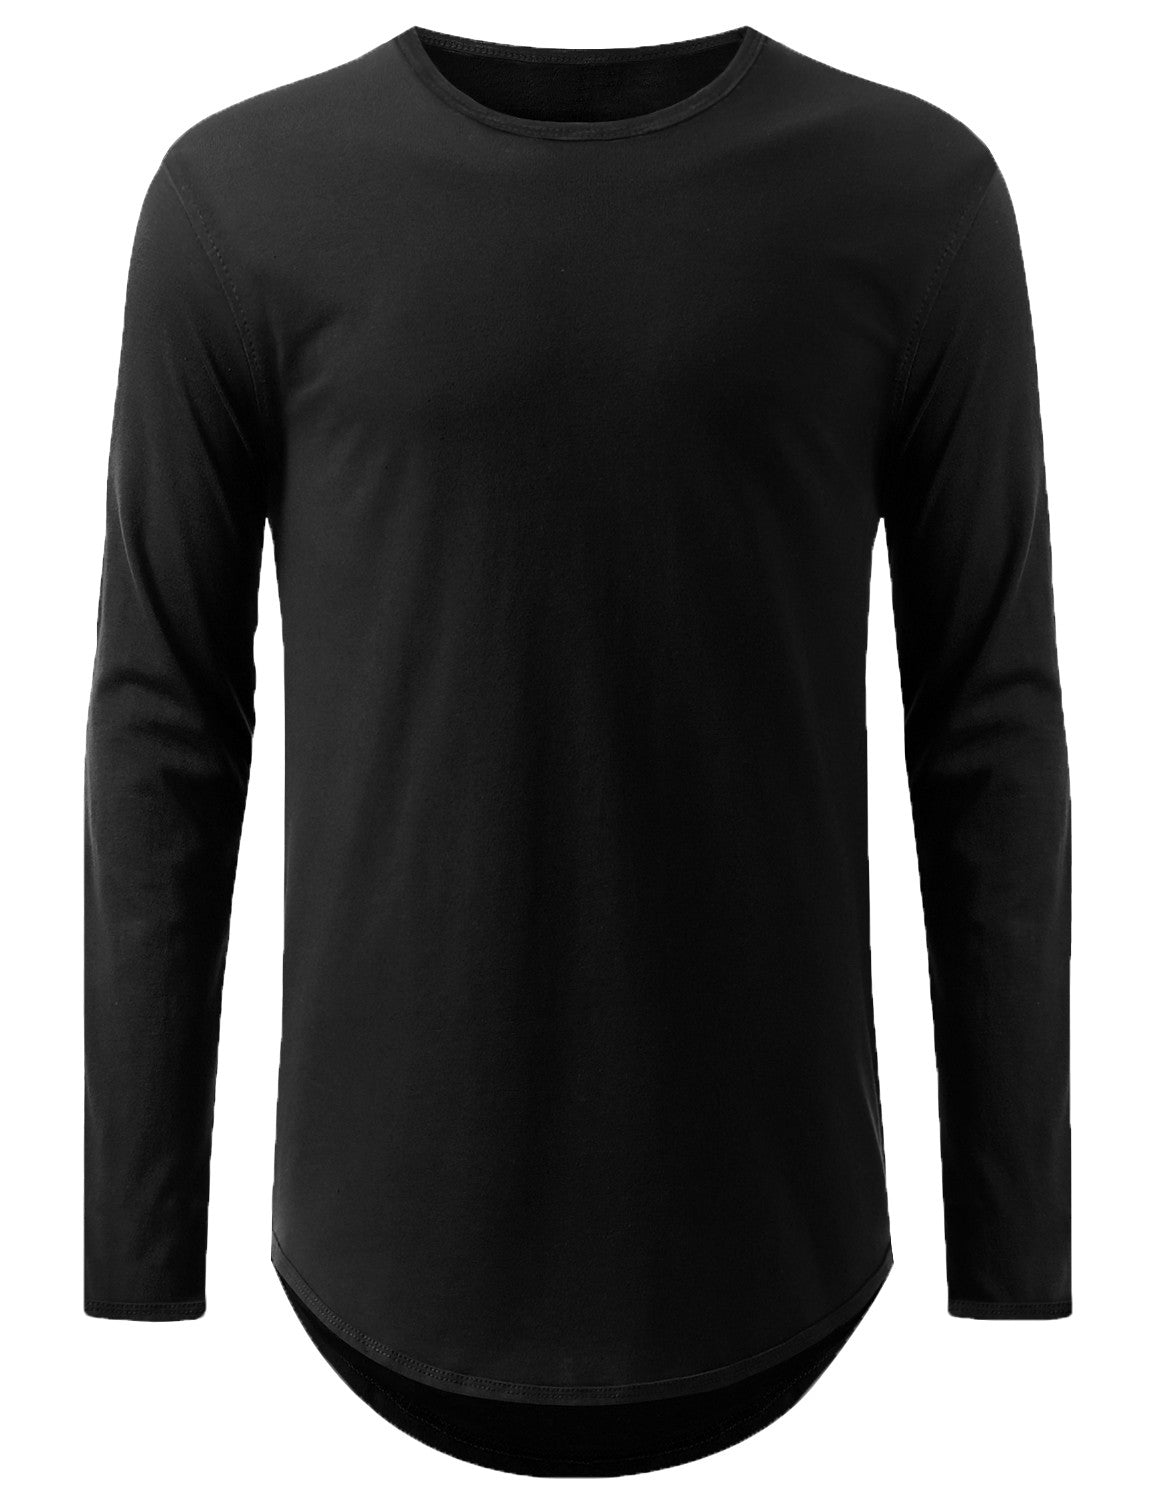 BLACK Lightweight Basic Long Sleeve Tshirt - URBANCREWS